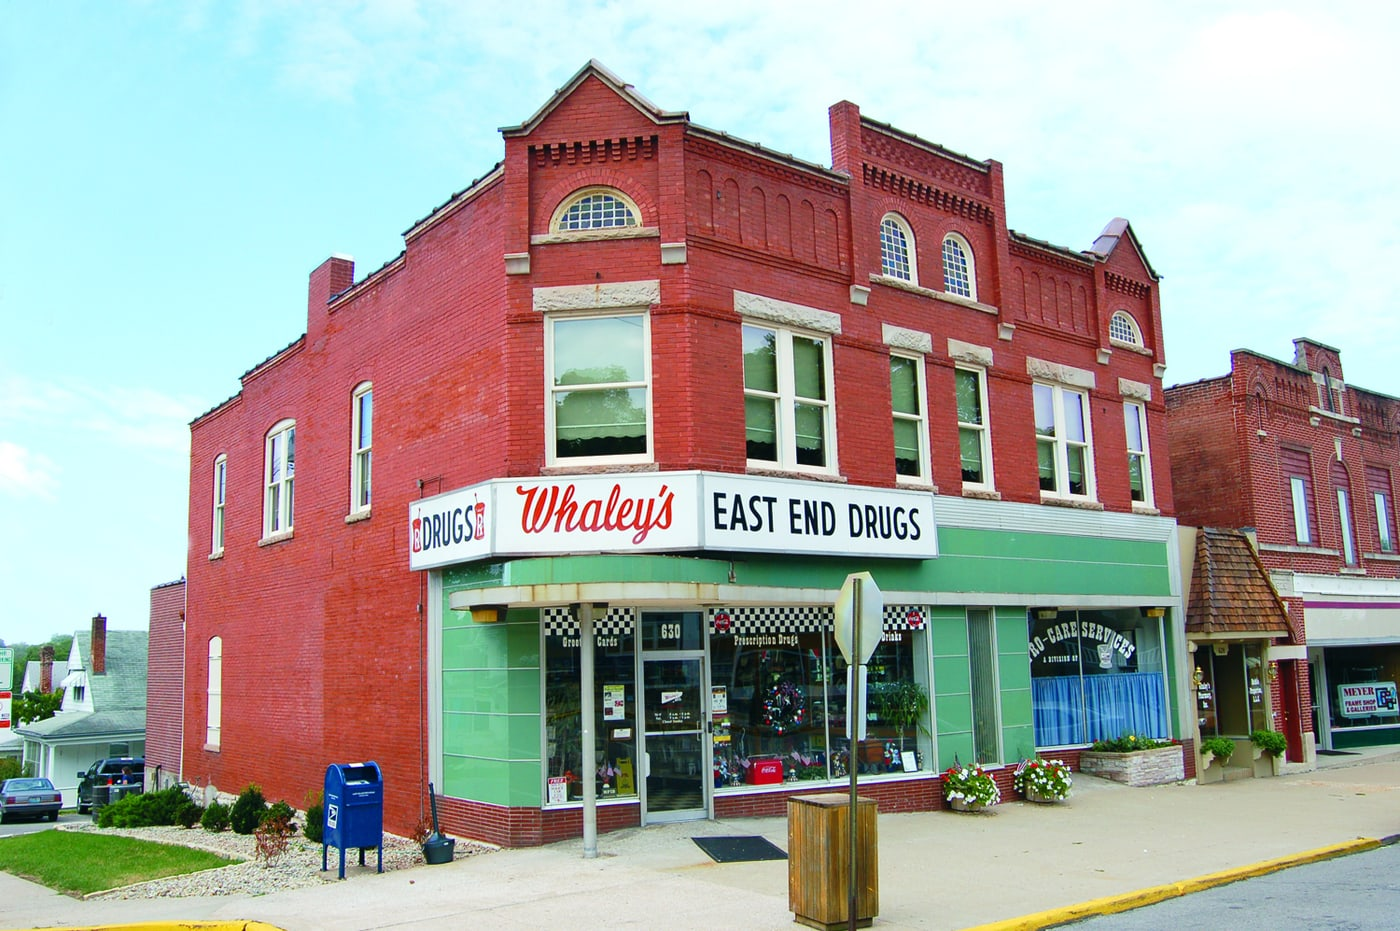 Whaley's East End